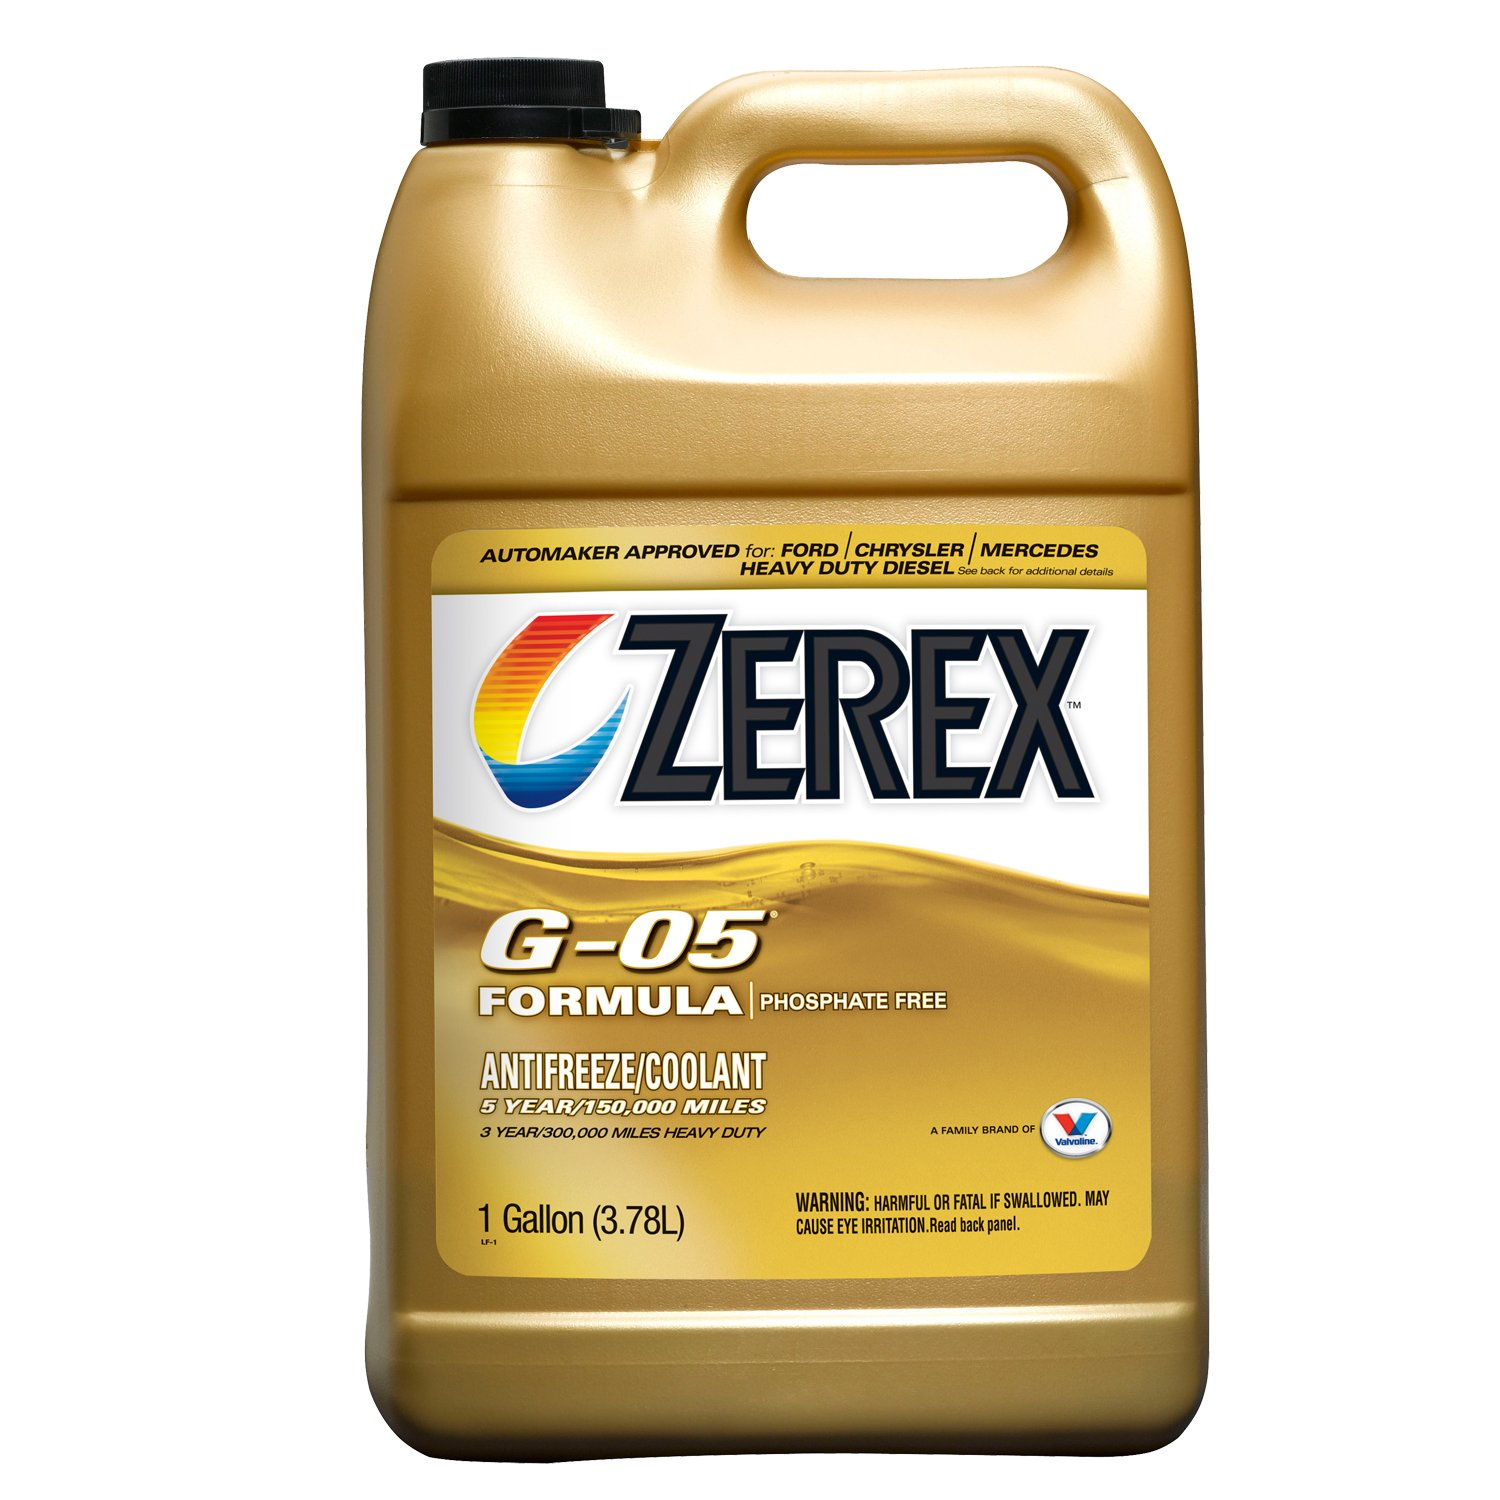 Zerex G-05 Antifreeze/Coolant, Concentrated - 1gal (Case of 6) (ZXG051-6PK) by Valvoline